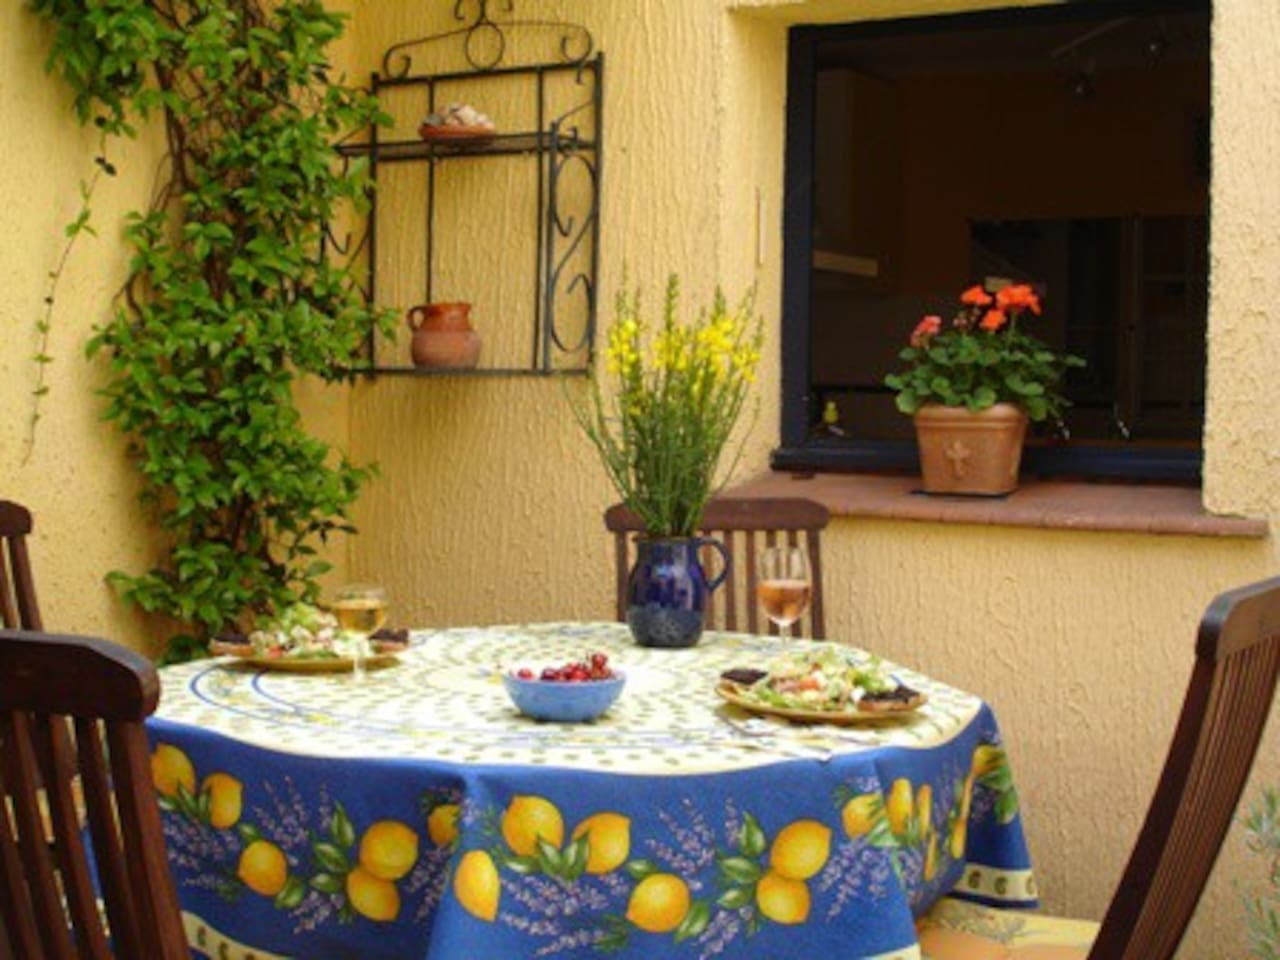 La Belle Cour's inviting courtyard - lunch is served!